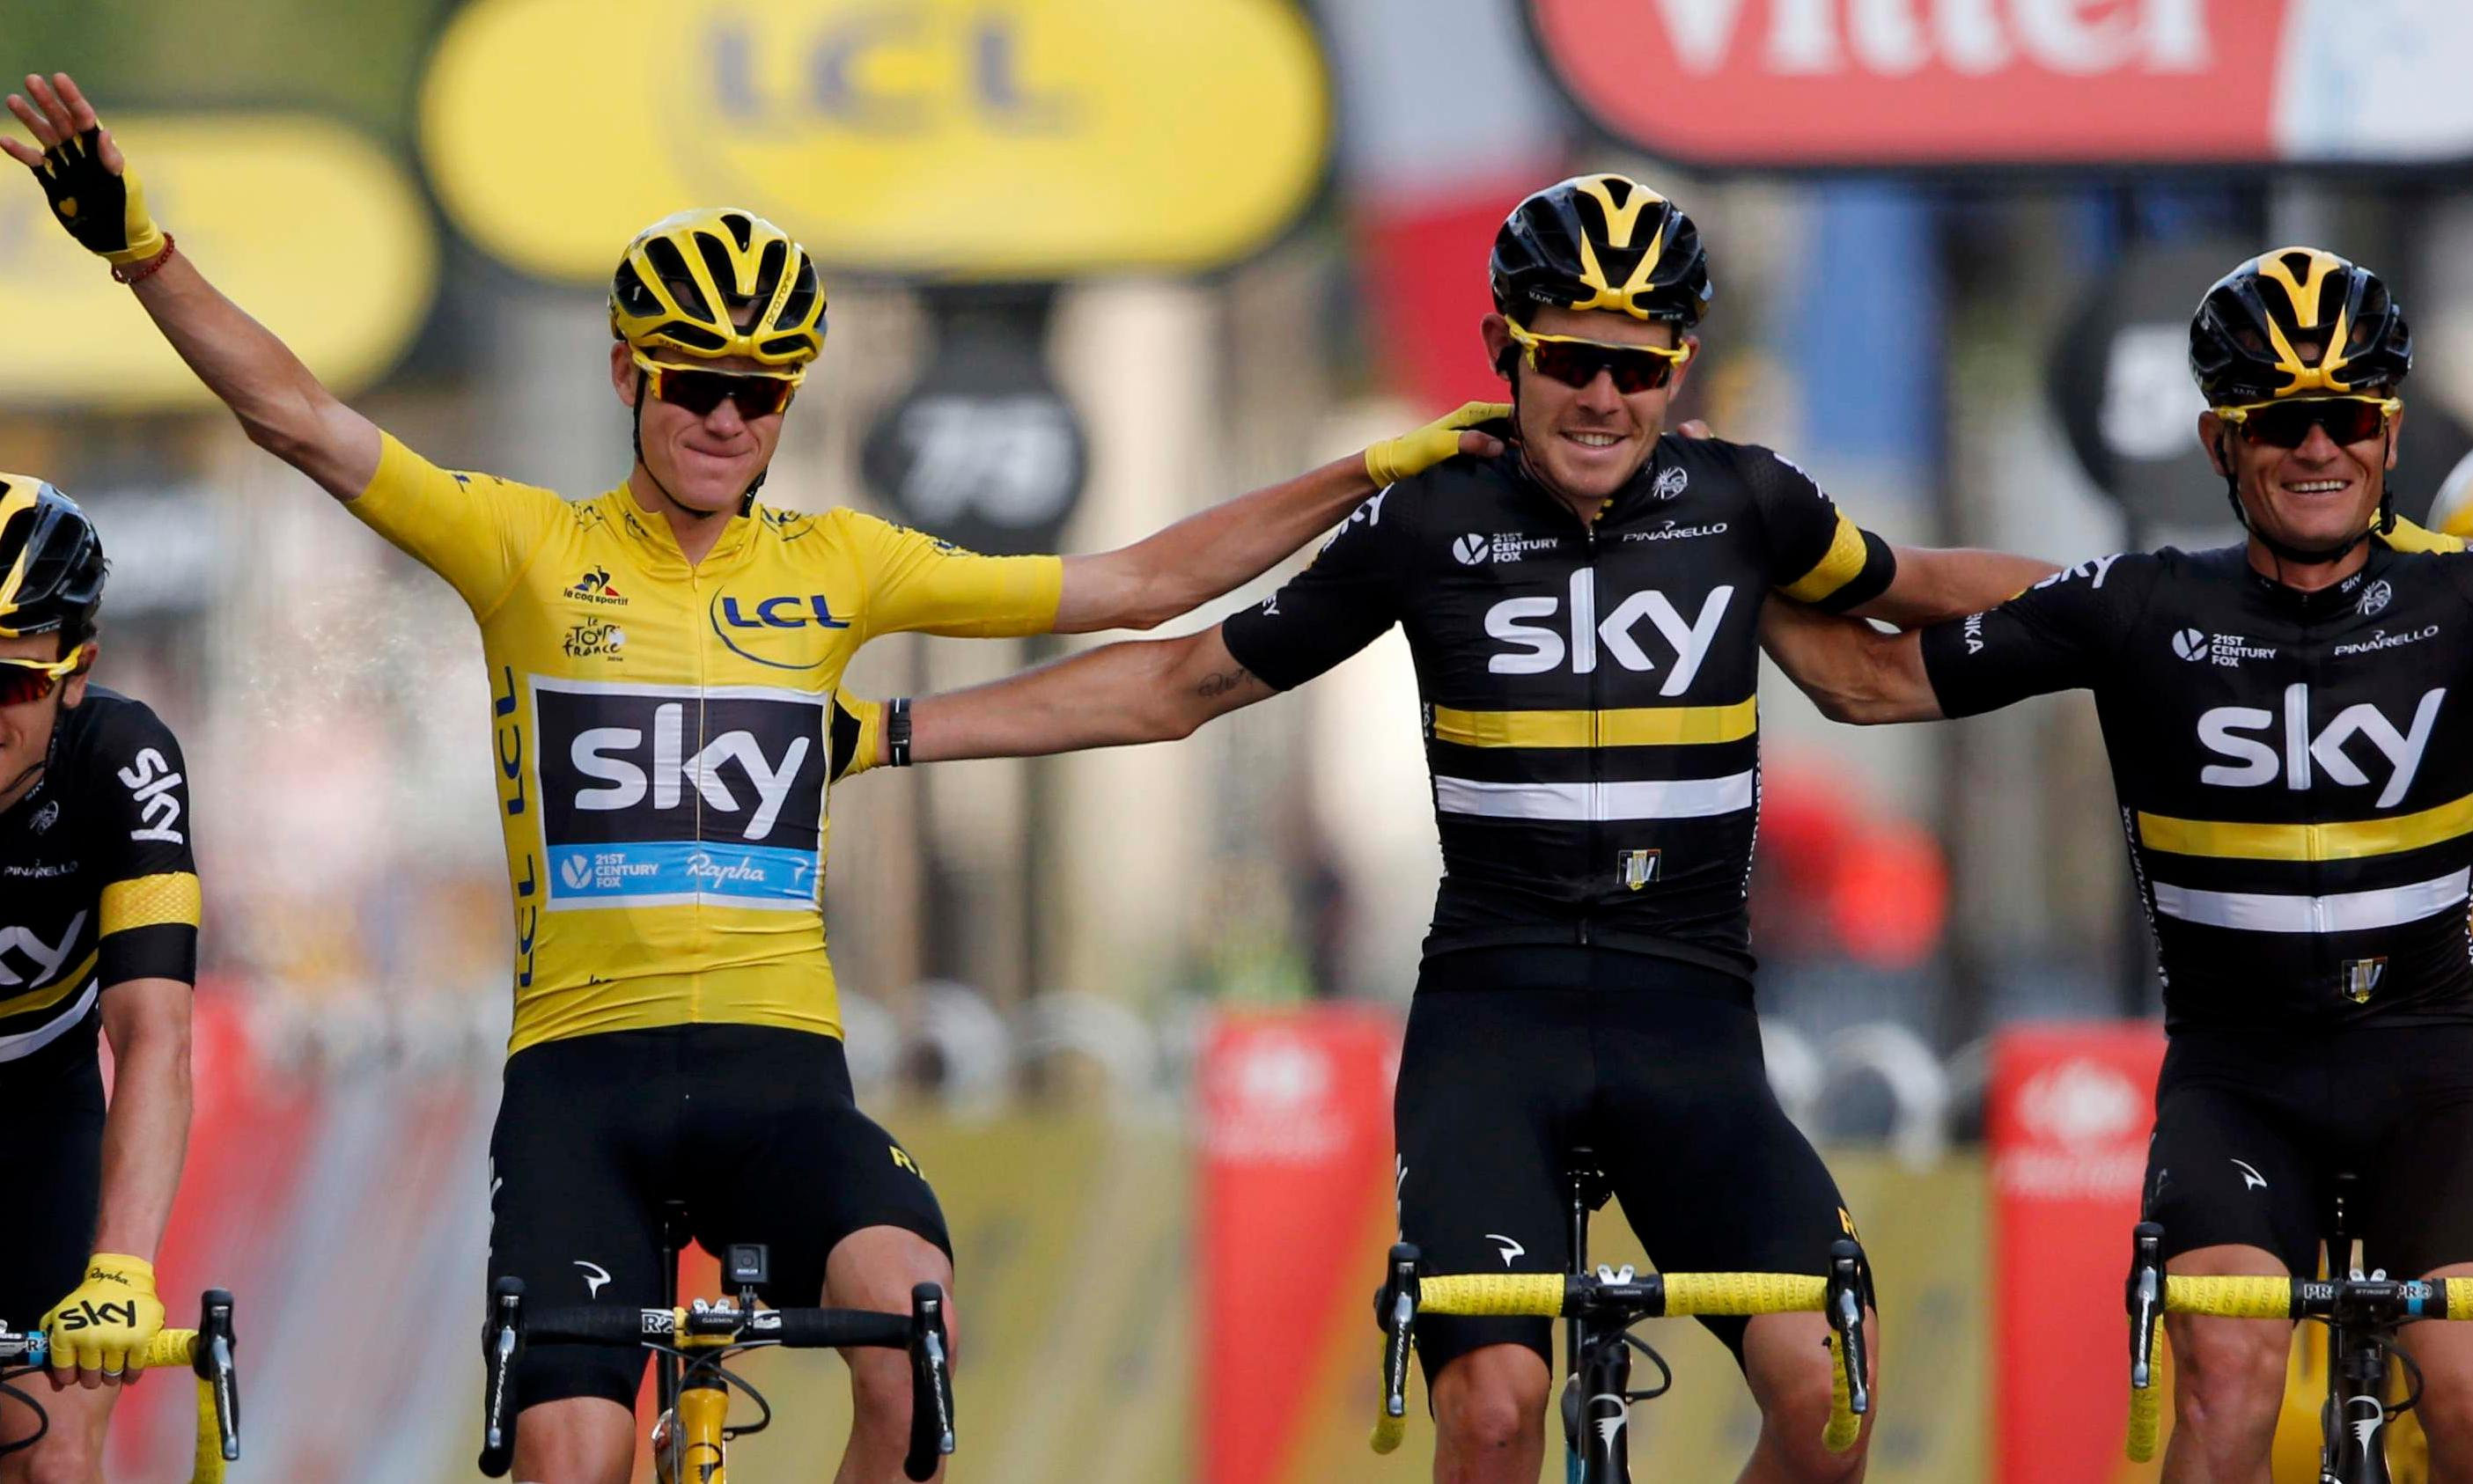 Who will challenge Chris Froome at the 2017 Tour de France?